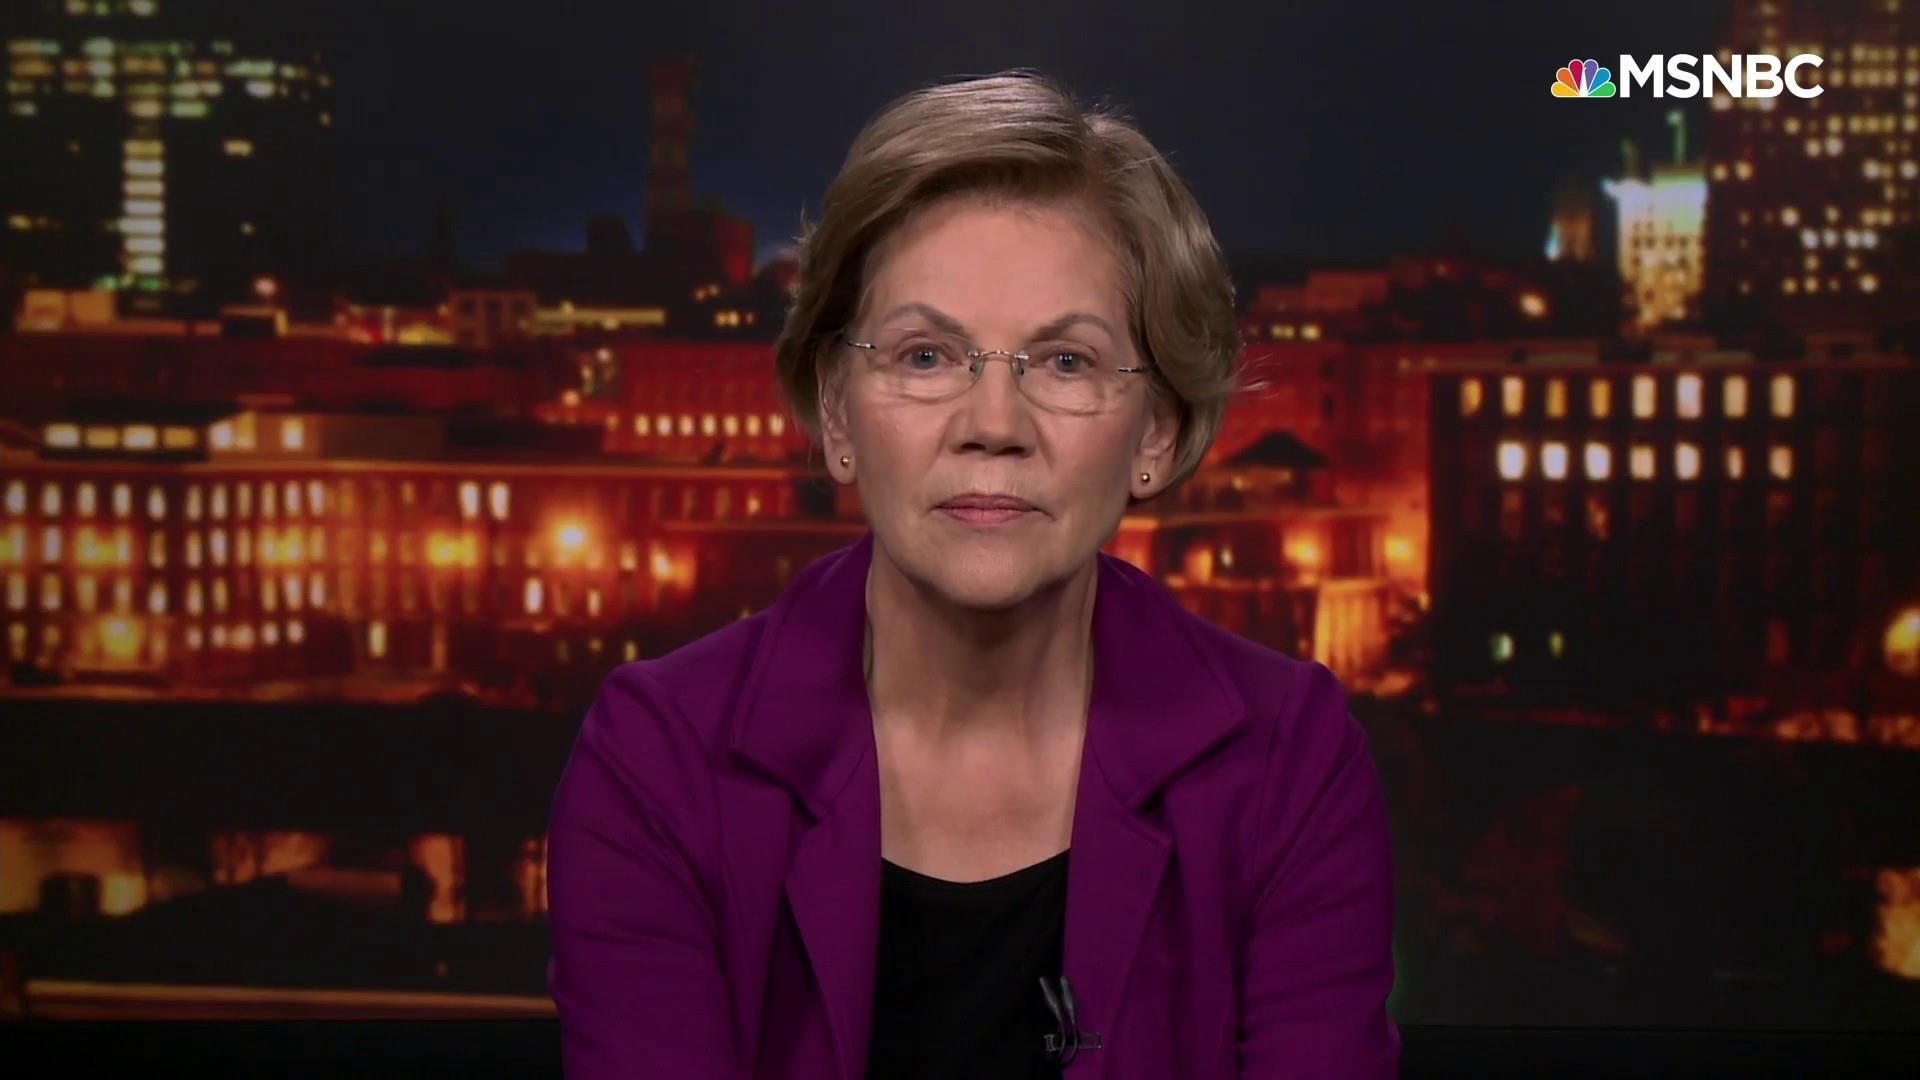 Sen. Warren: 'Mitch McConnell should not be there to block our democracy'